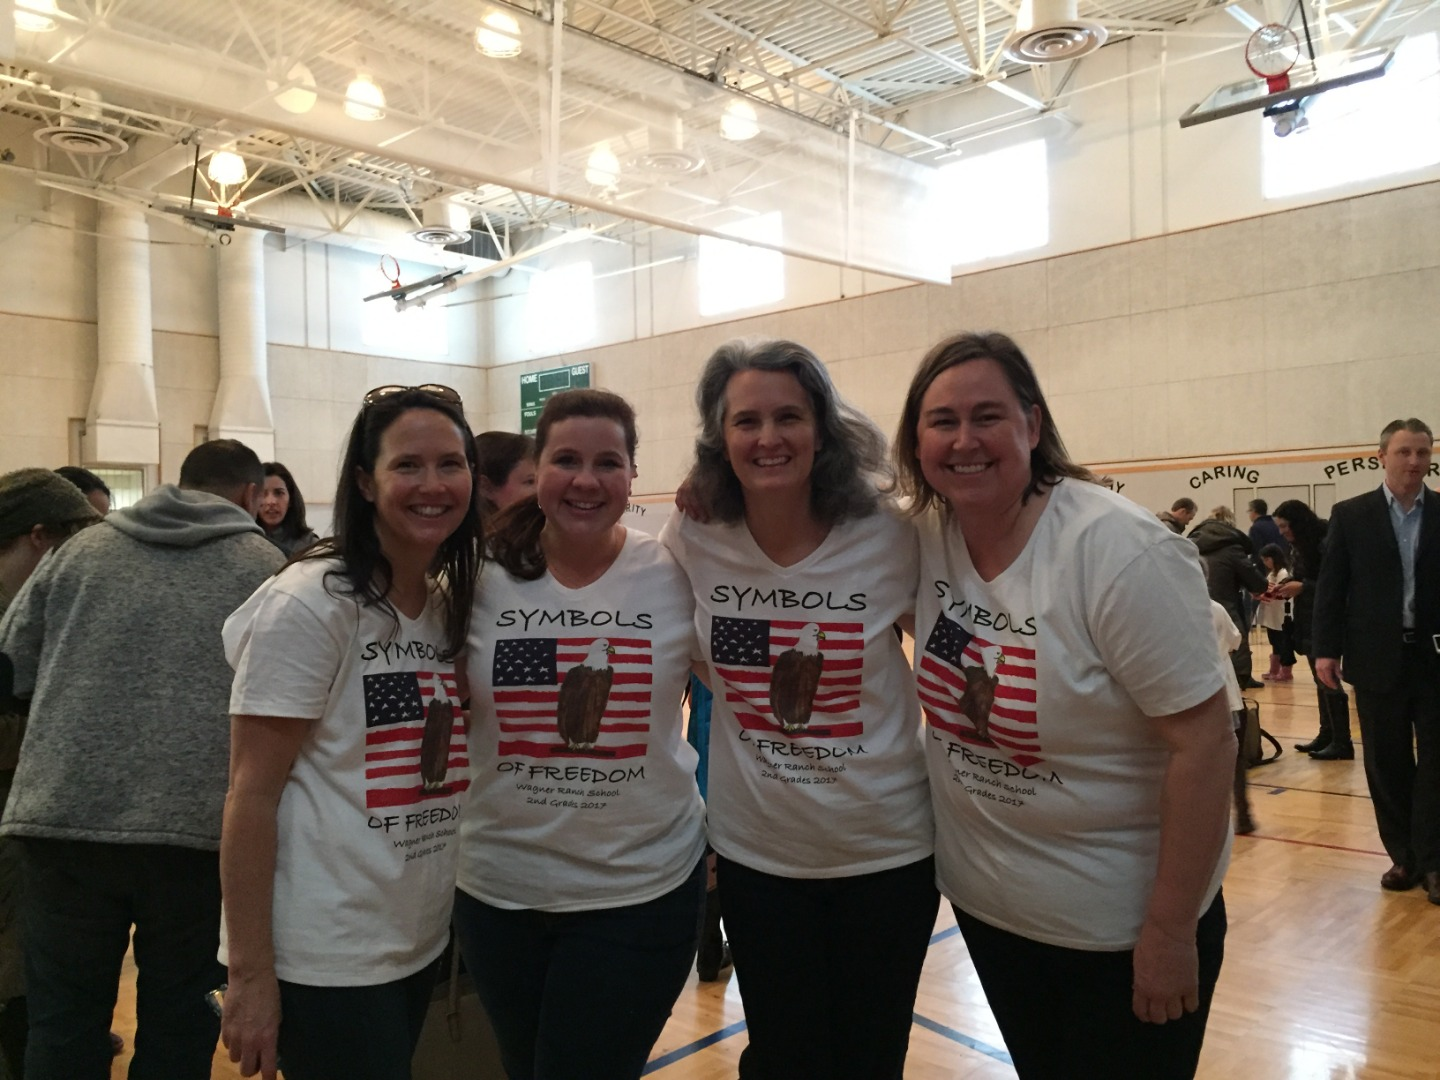 Mrs. Headley, Mrs. Doyle, Mrs. O'Neill, and Mrs. Ritzman